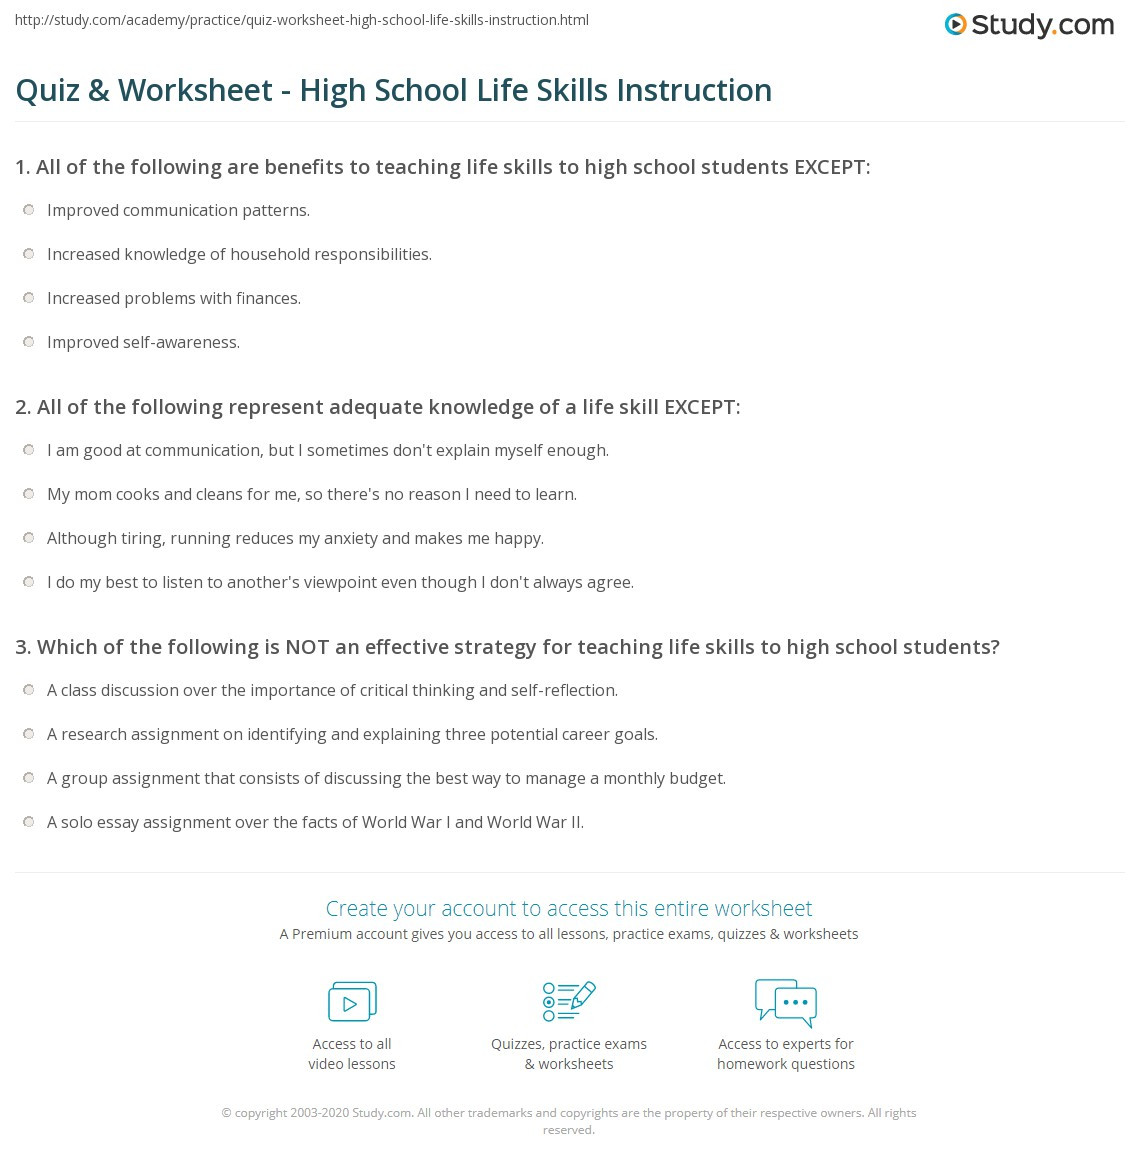 Life Skills Vocabulary Worksheets Quiz & Worksheet High School Life Skills Instruction